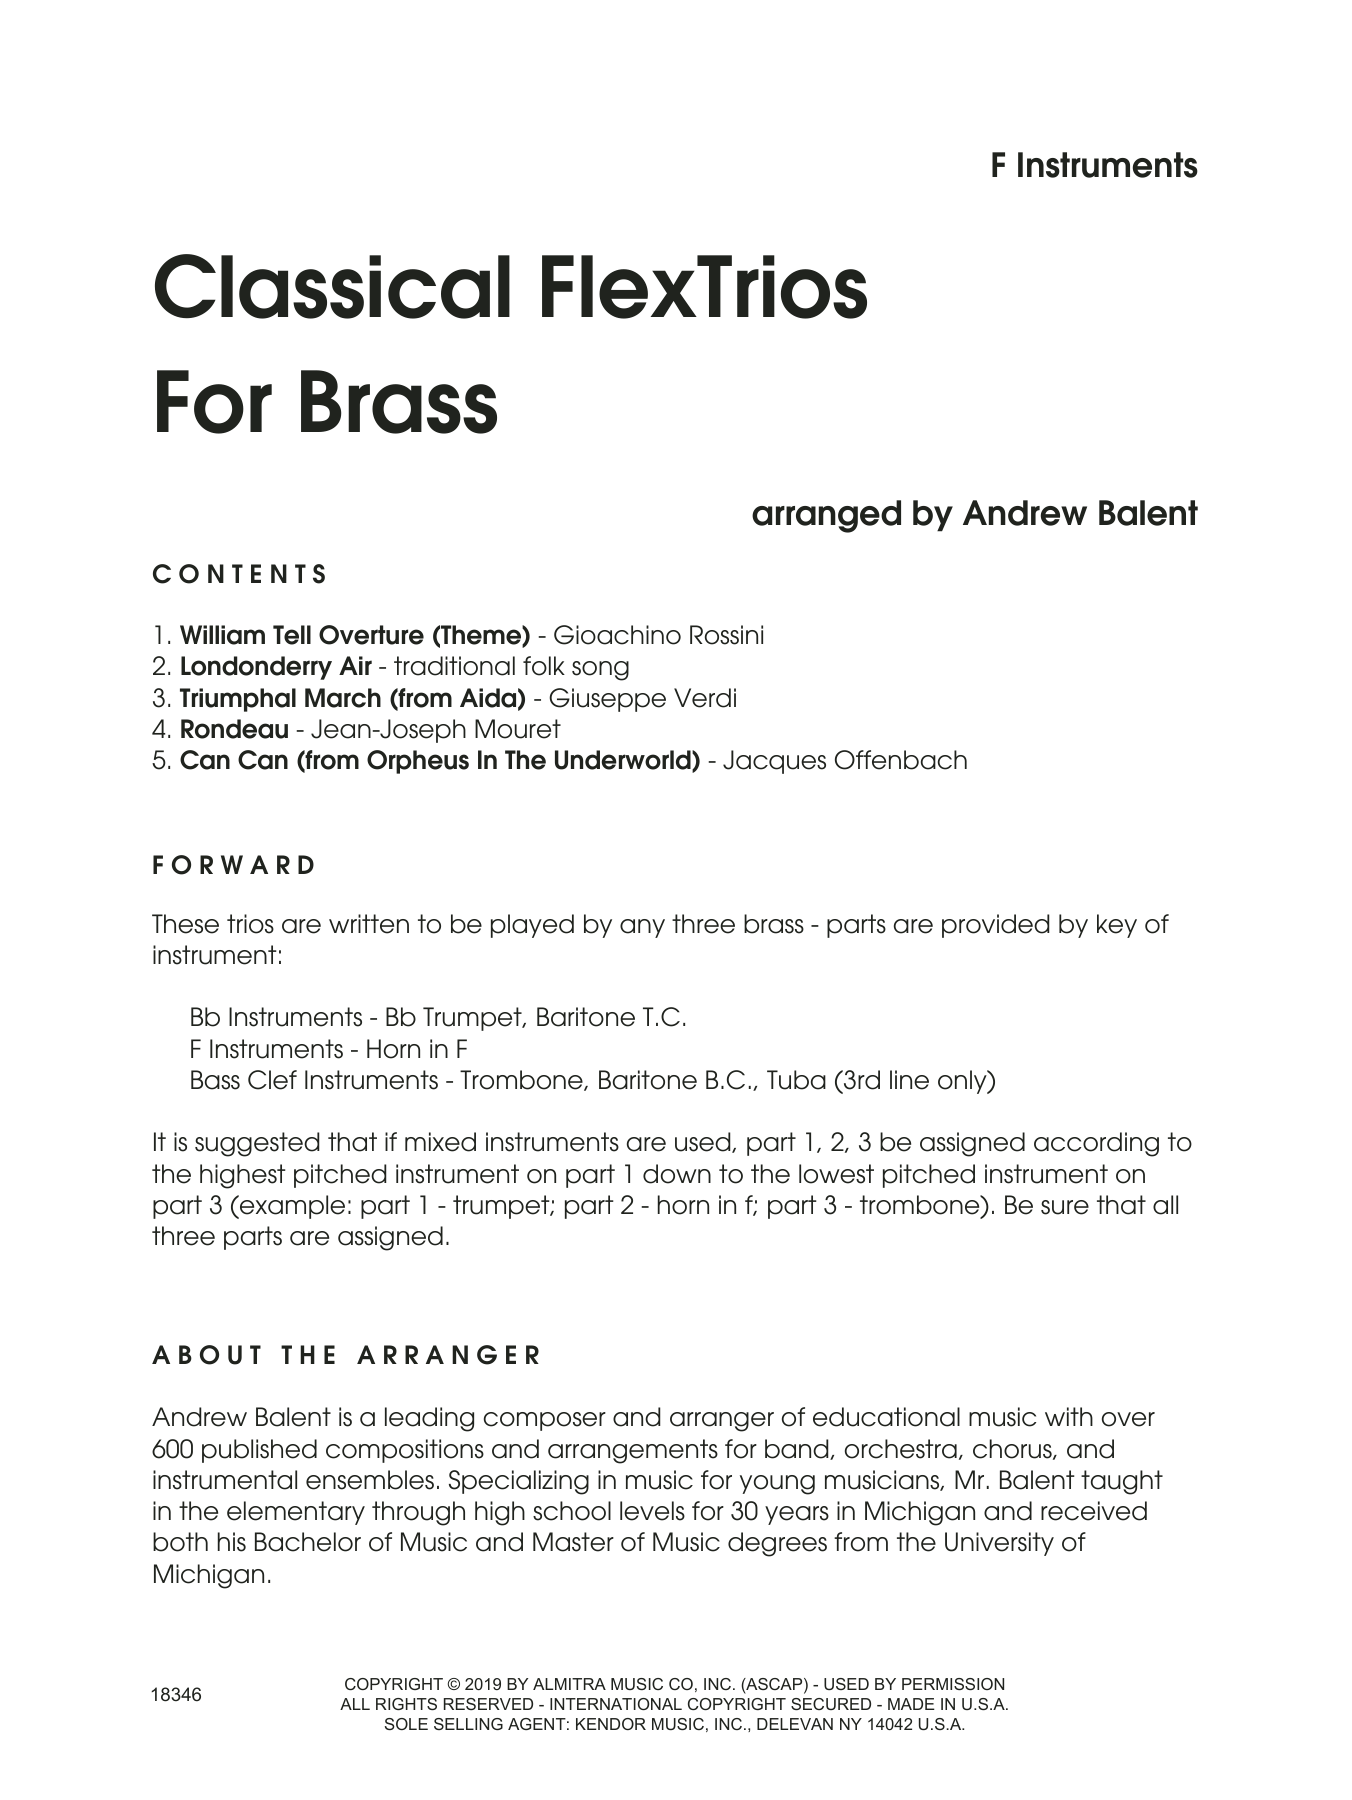 Classical Flextrios For Brass (arr. Andrew Balent) - Horn in F Sheet Music